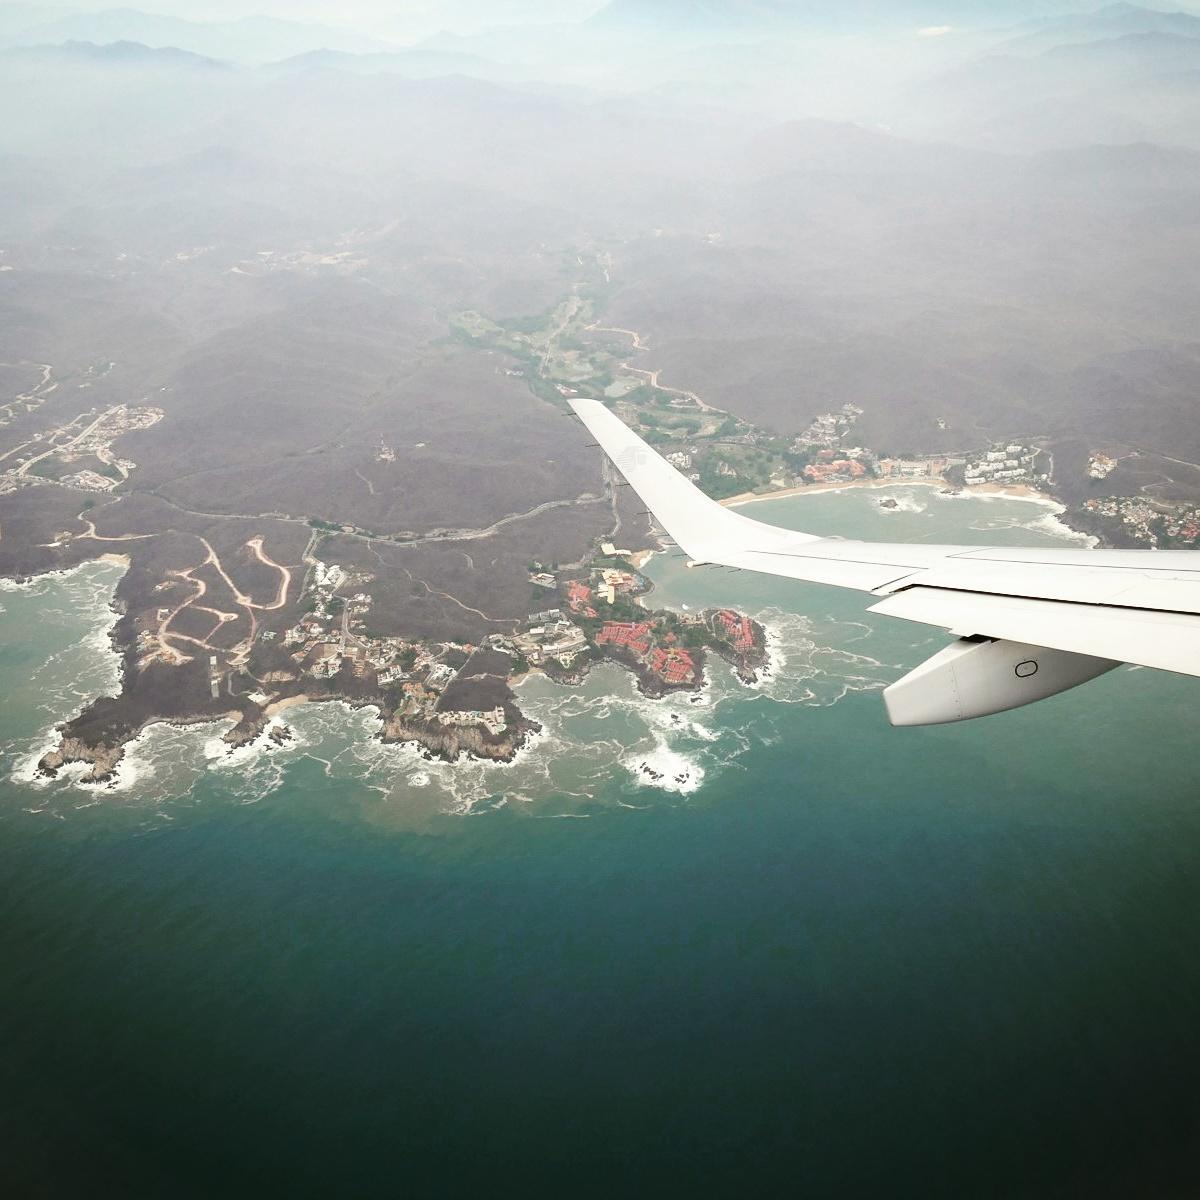 The small town of Huatulco, on Mexico's southern Pacific coast, appears under the wingtip. Noah Strycker